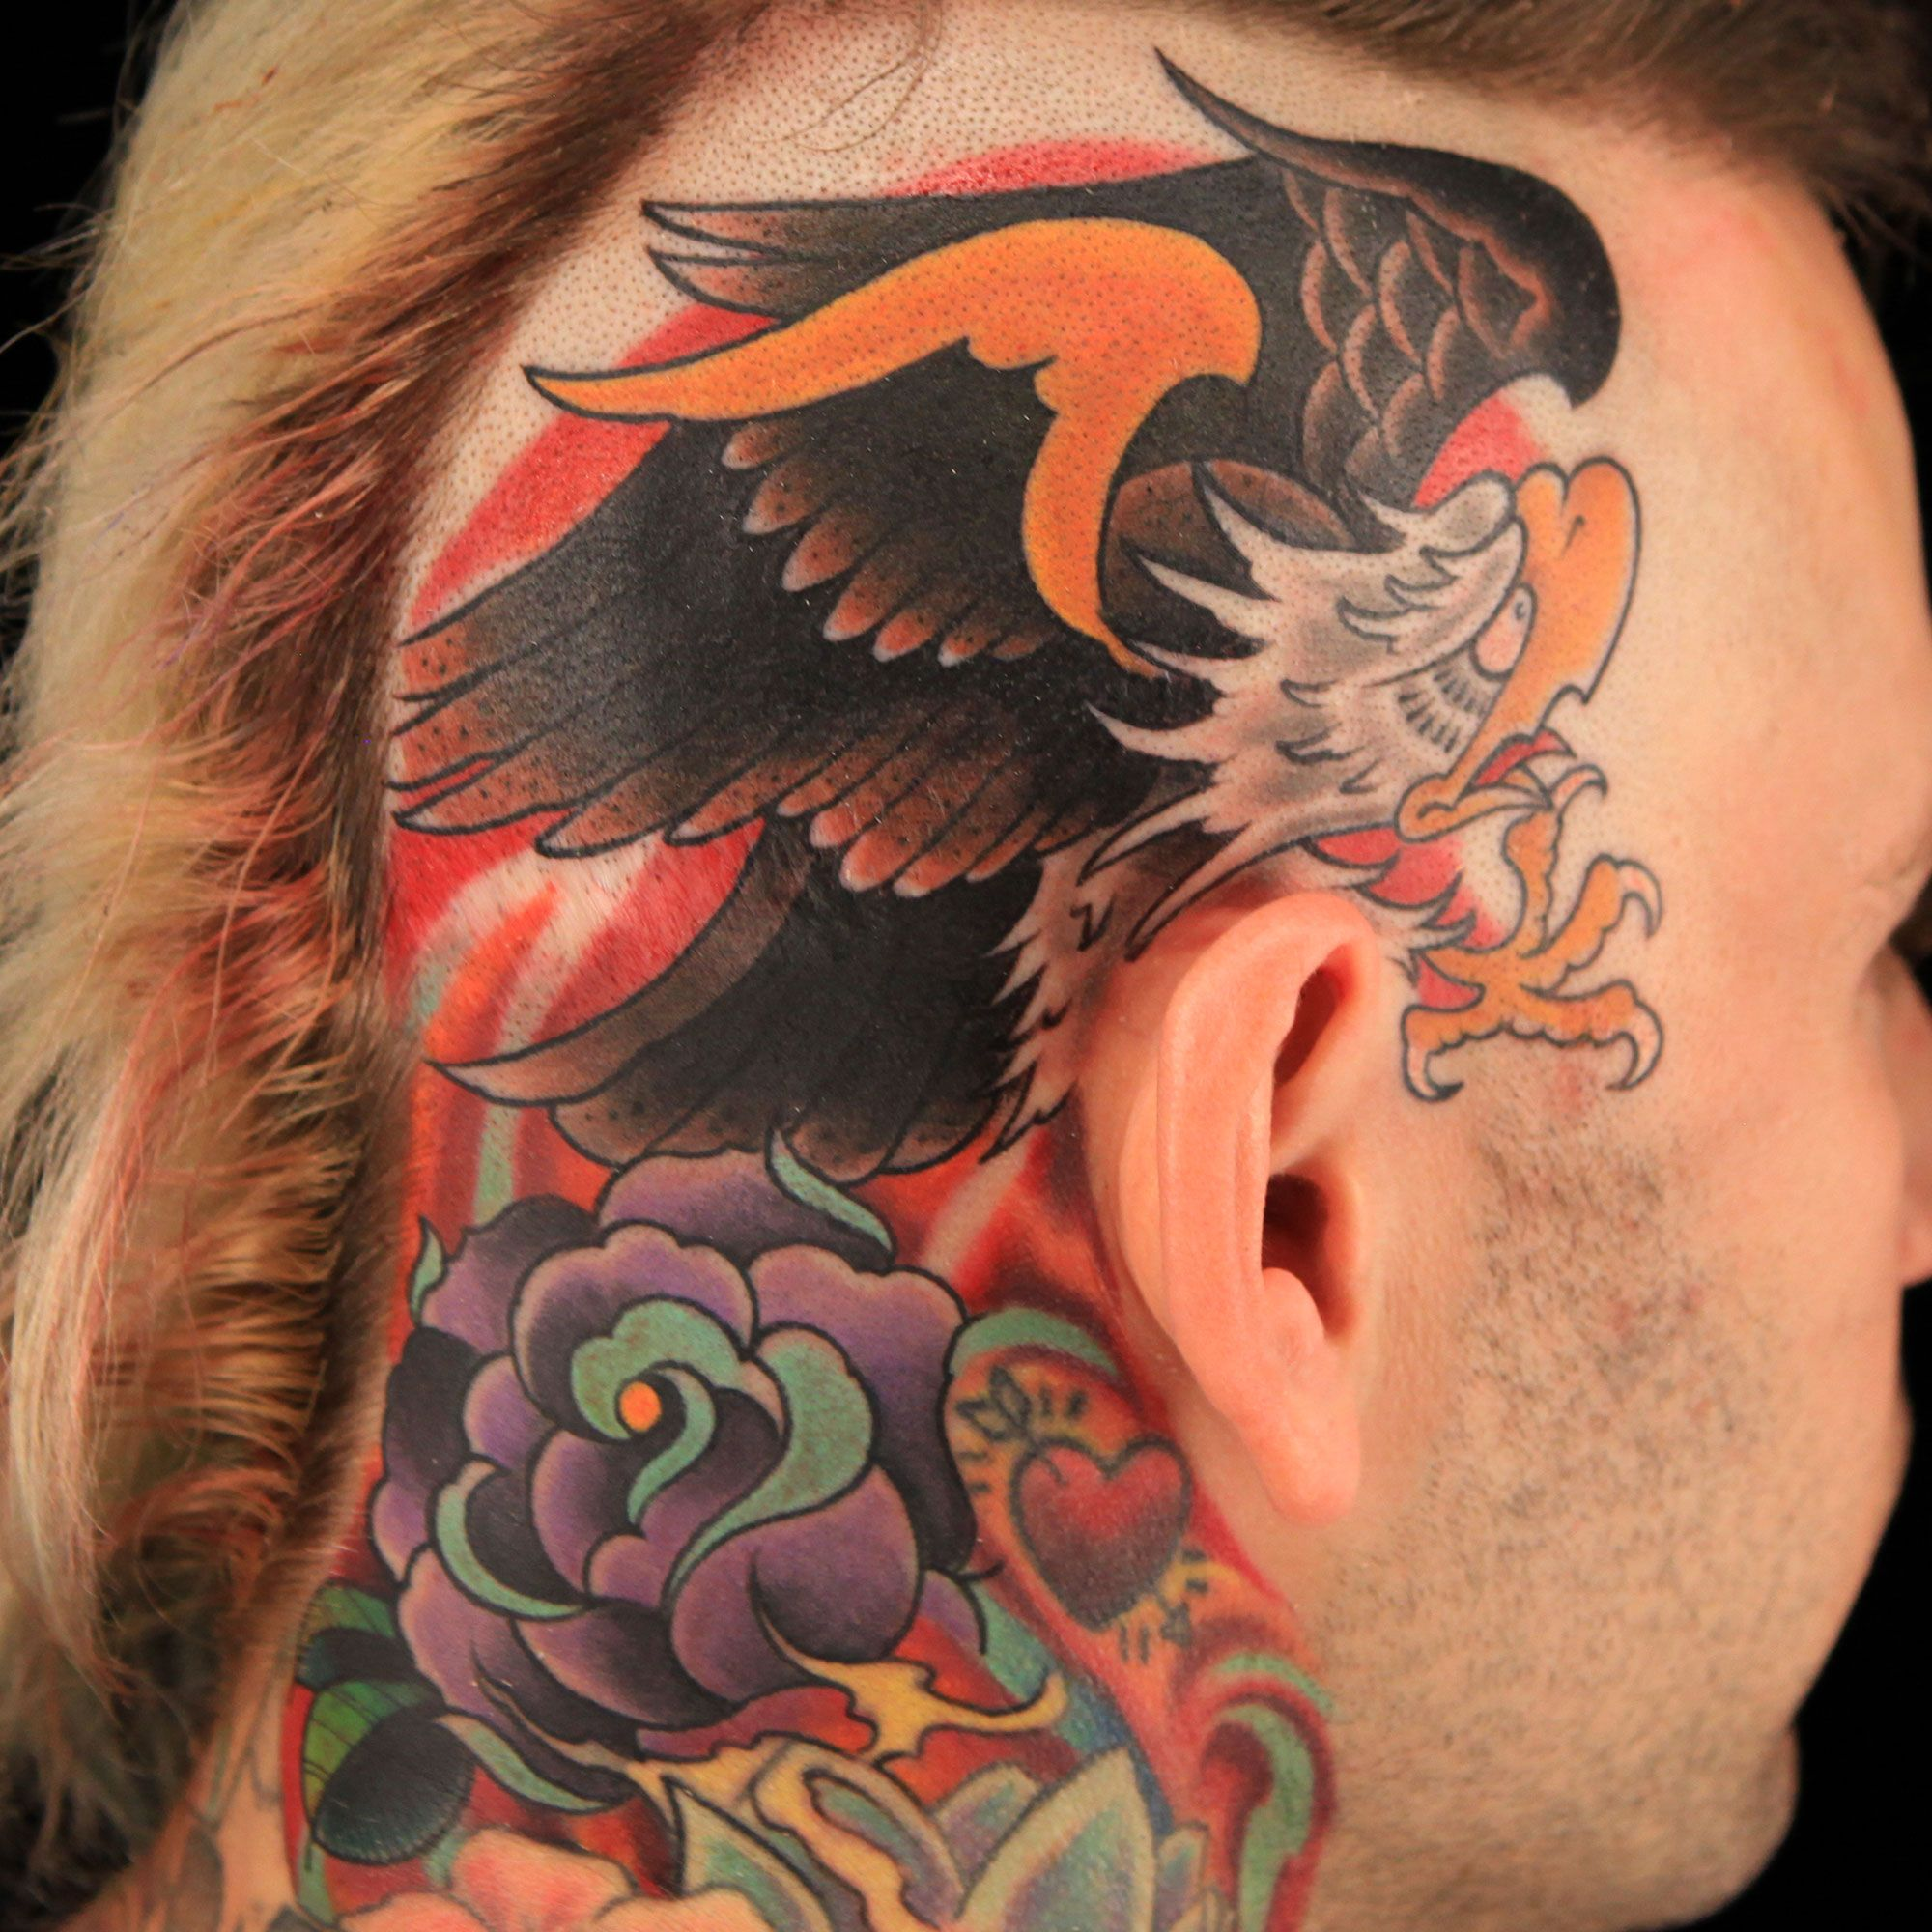 Check out this high res photo of Jime Litwalk's tattoo